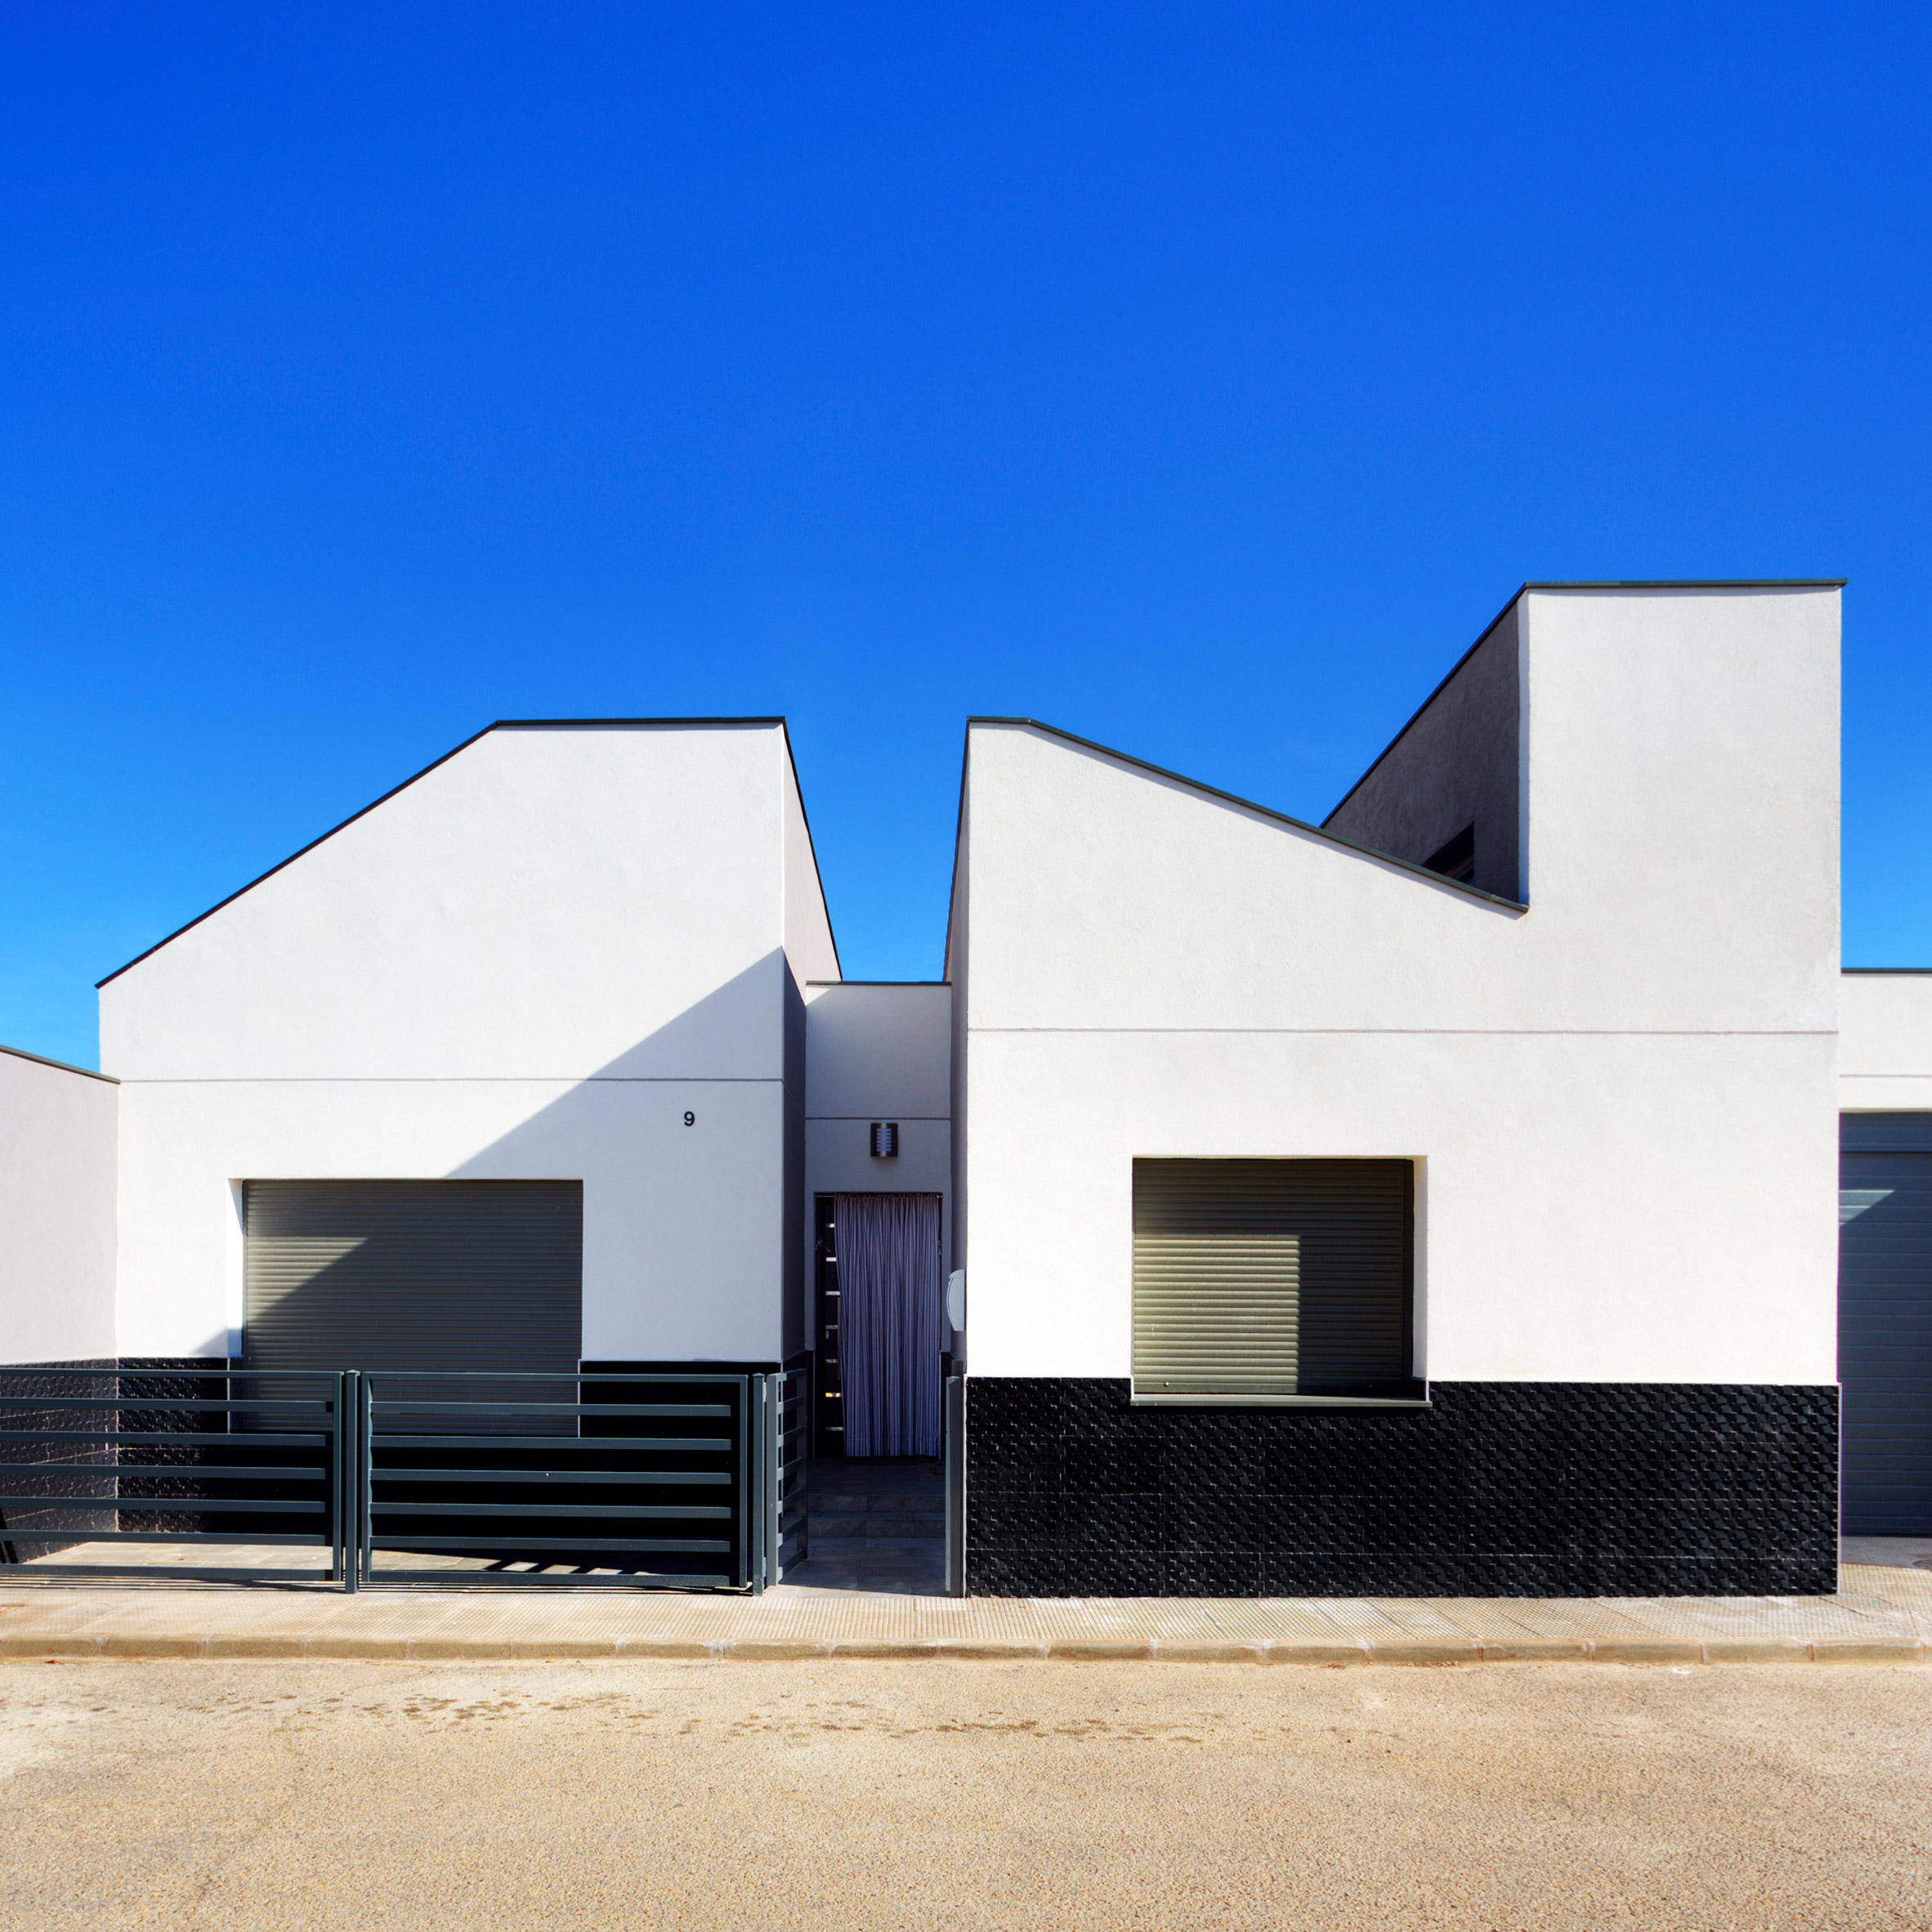 Ooiio Architecture 39 S Casa Arm Appears Cut In Half By A Recessed Entrance Archiweb 3 0